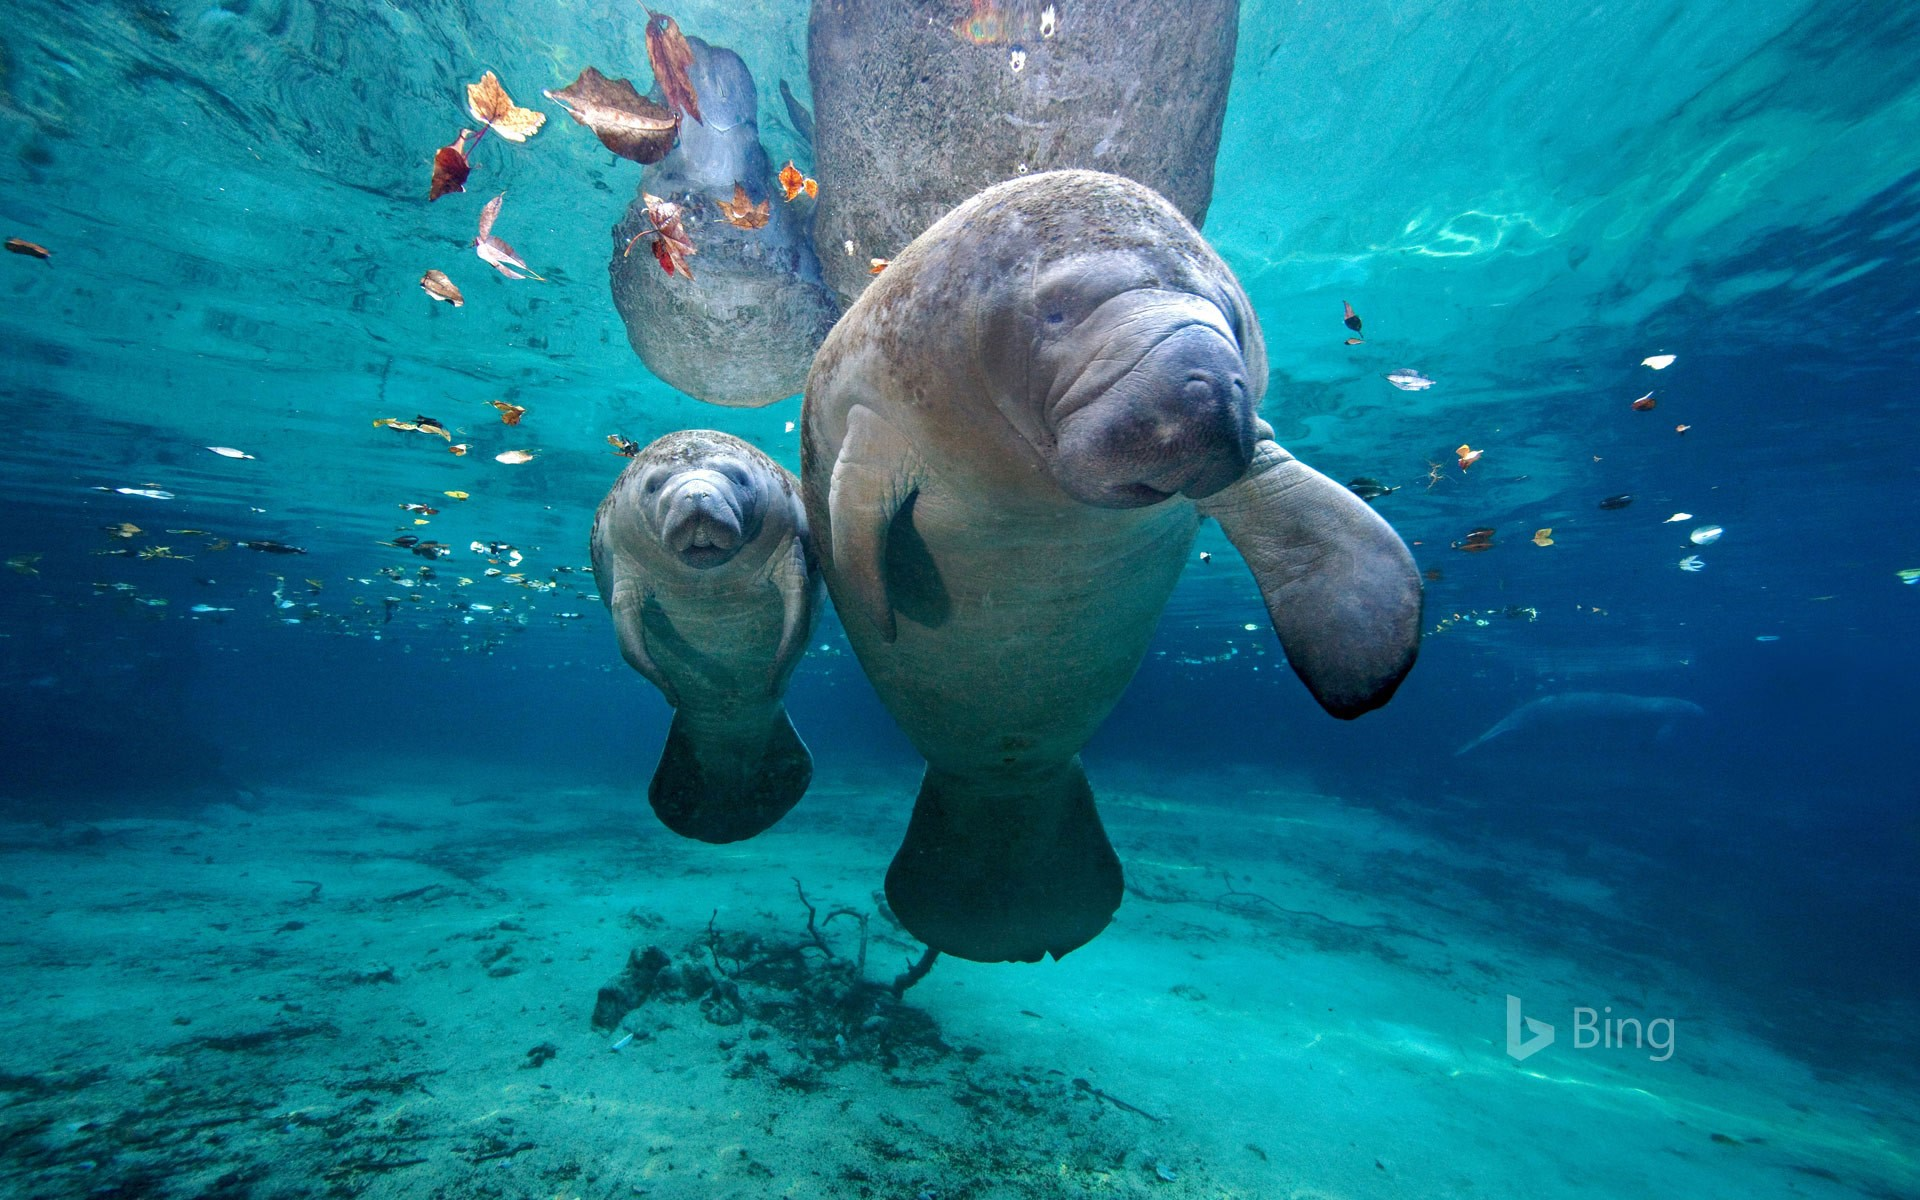 West Indian manatee mom and baby at Three Sisters Springs, Florida